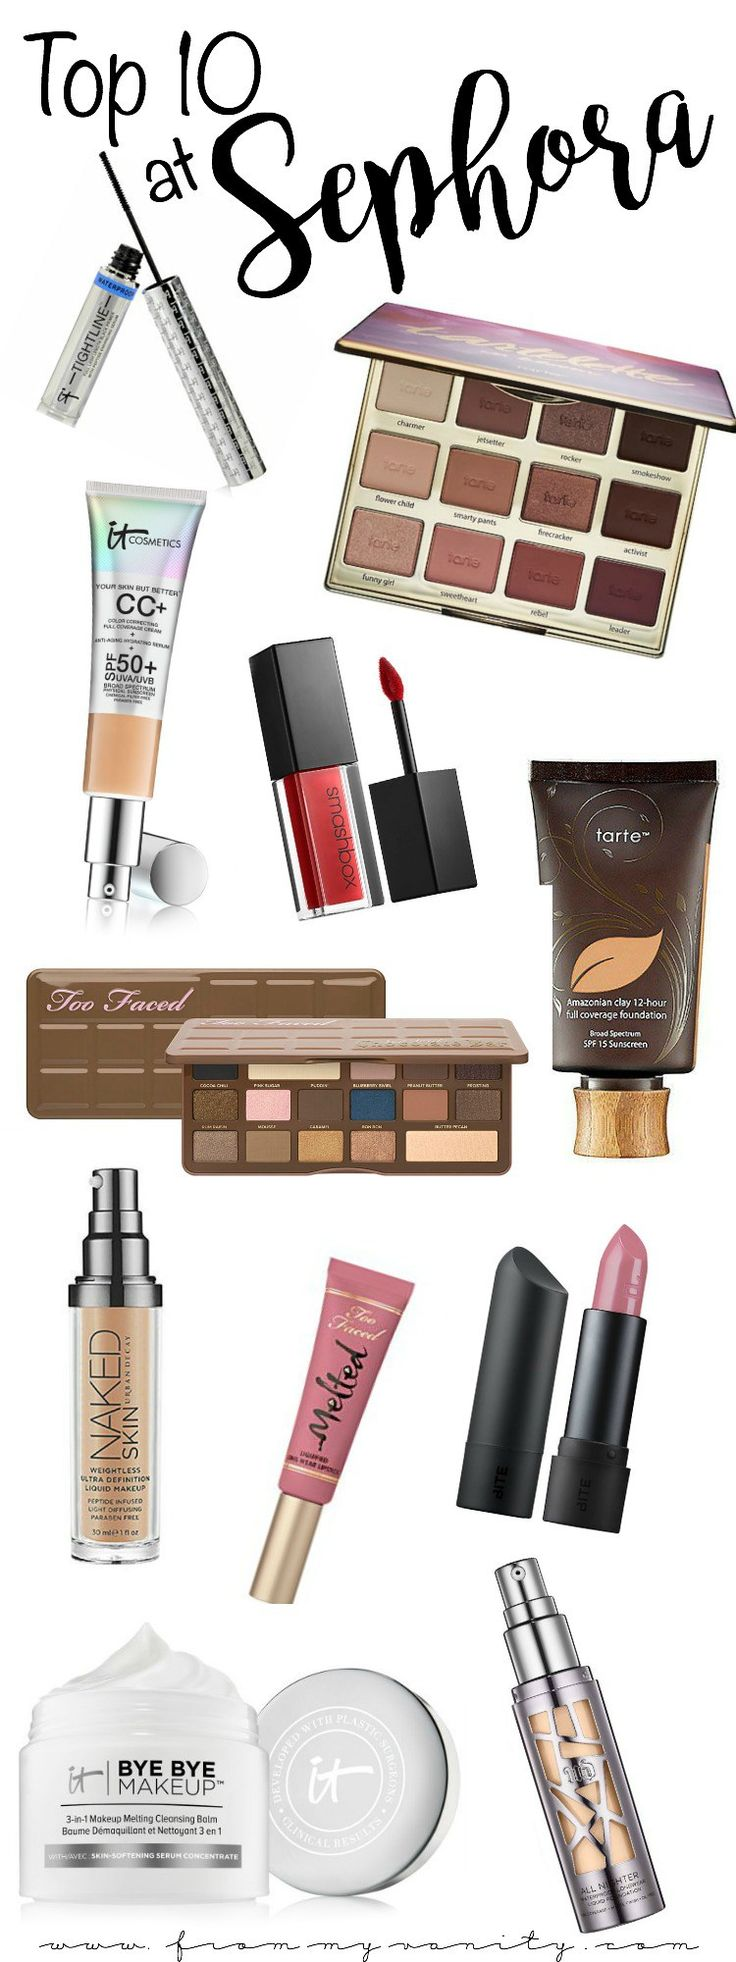 The Top 10 Sephora recommendations you need to get!